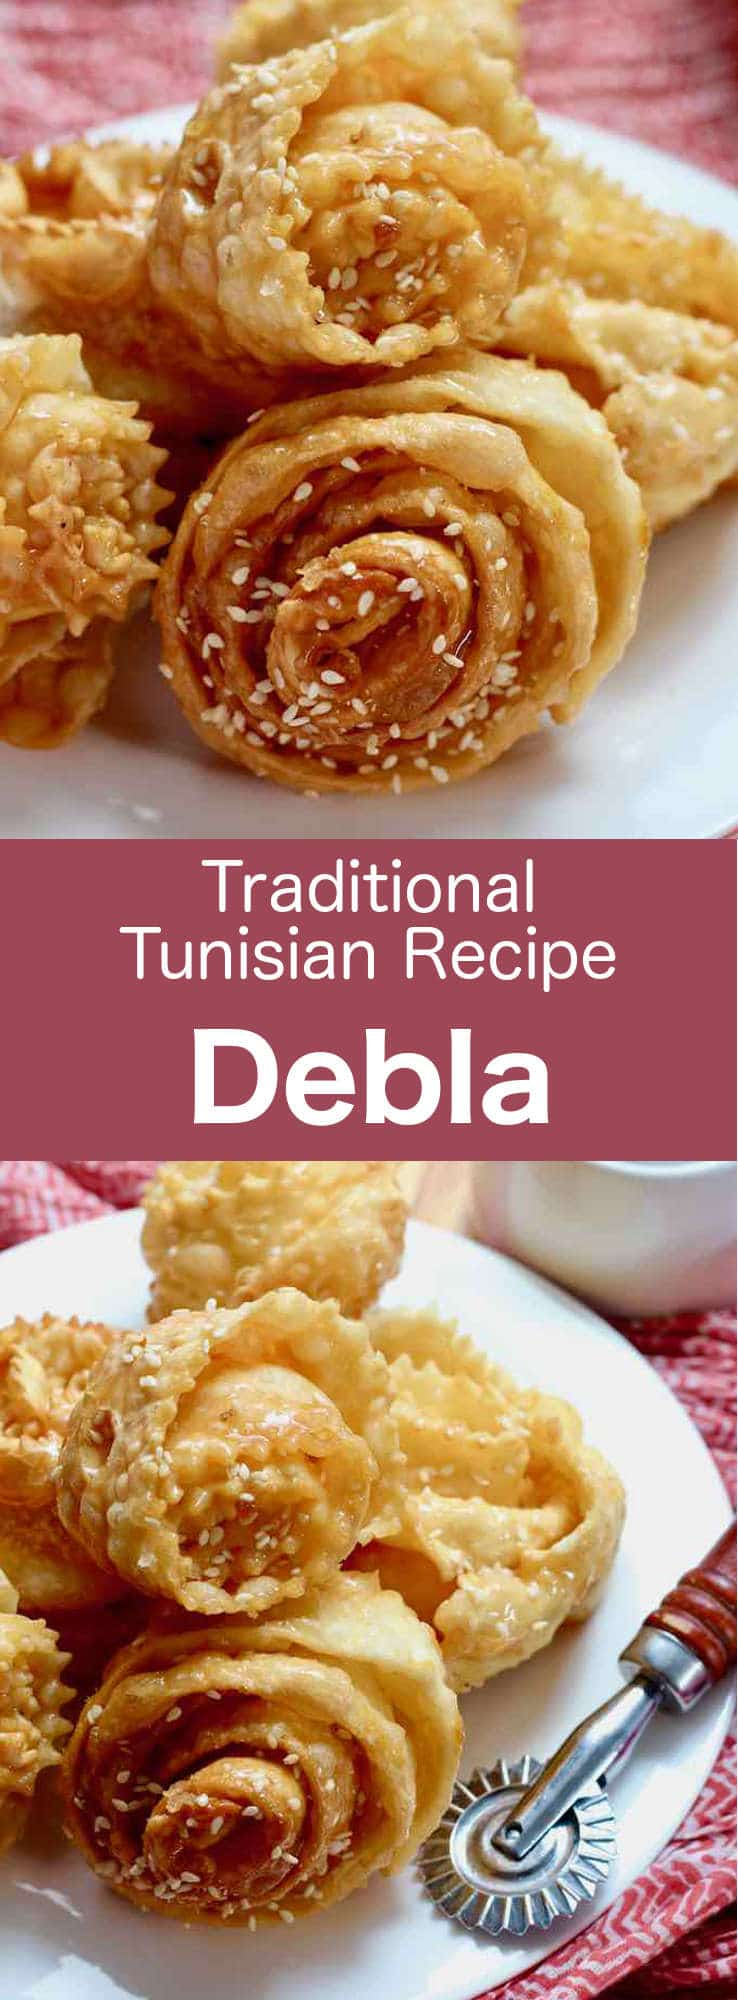 Debla (or oudnin el kadhi) is a Tunisian pastry which consists of a thin strip of dough that is fried before being coated with an orange blossom water scented syrup, and sprinkled with sesame seeds or crushed nuts. #Tunisia #Tunisian #TunisianCuisine #TunisianRecipe #NorthAfricanCuisine #NorthAfricanRecipe #NorthAfrica #Maghreb #MaghrebCuisine #Pastry #TunisianPastry #NorthAfricanPastry #WorldCuisine #196flavors